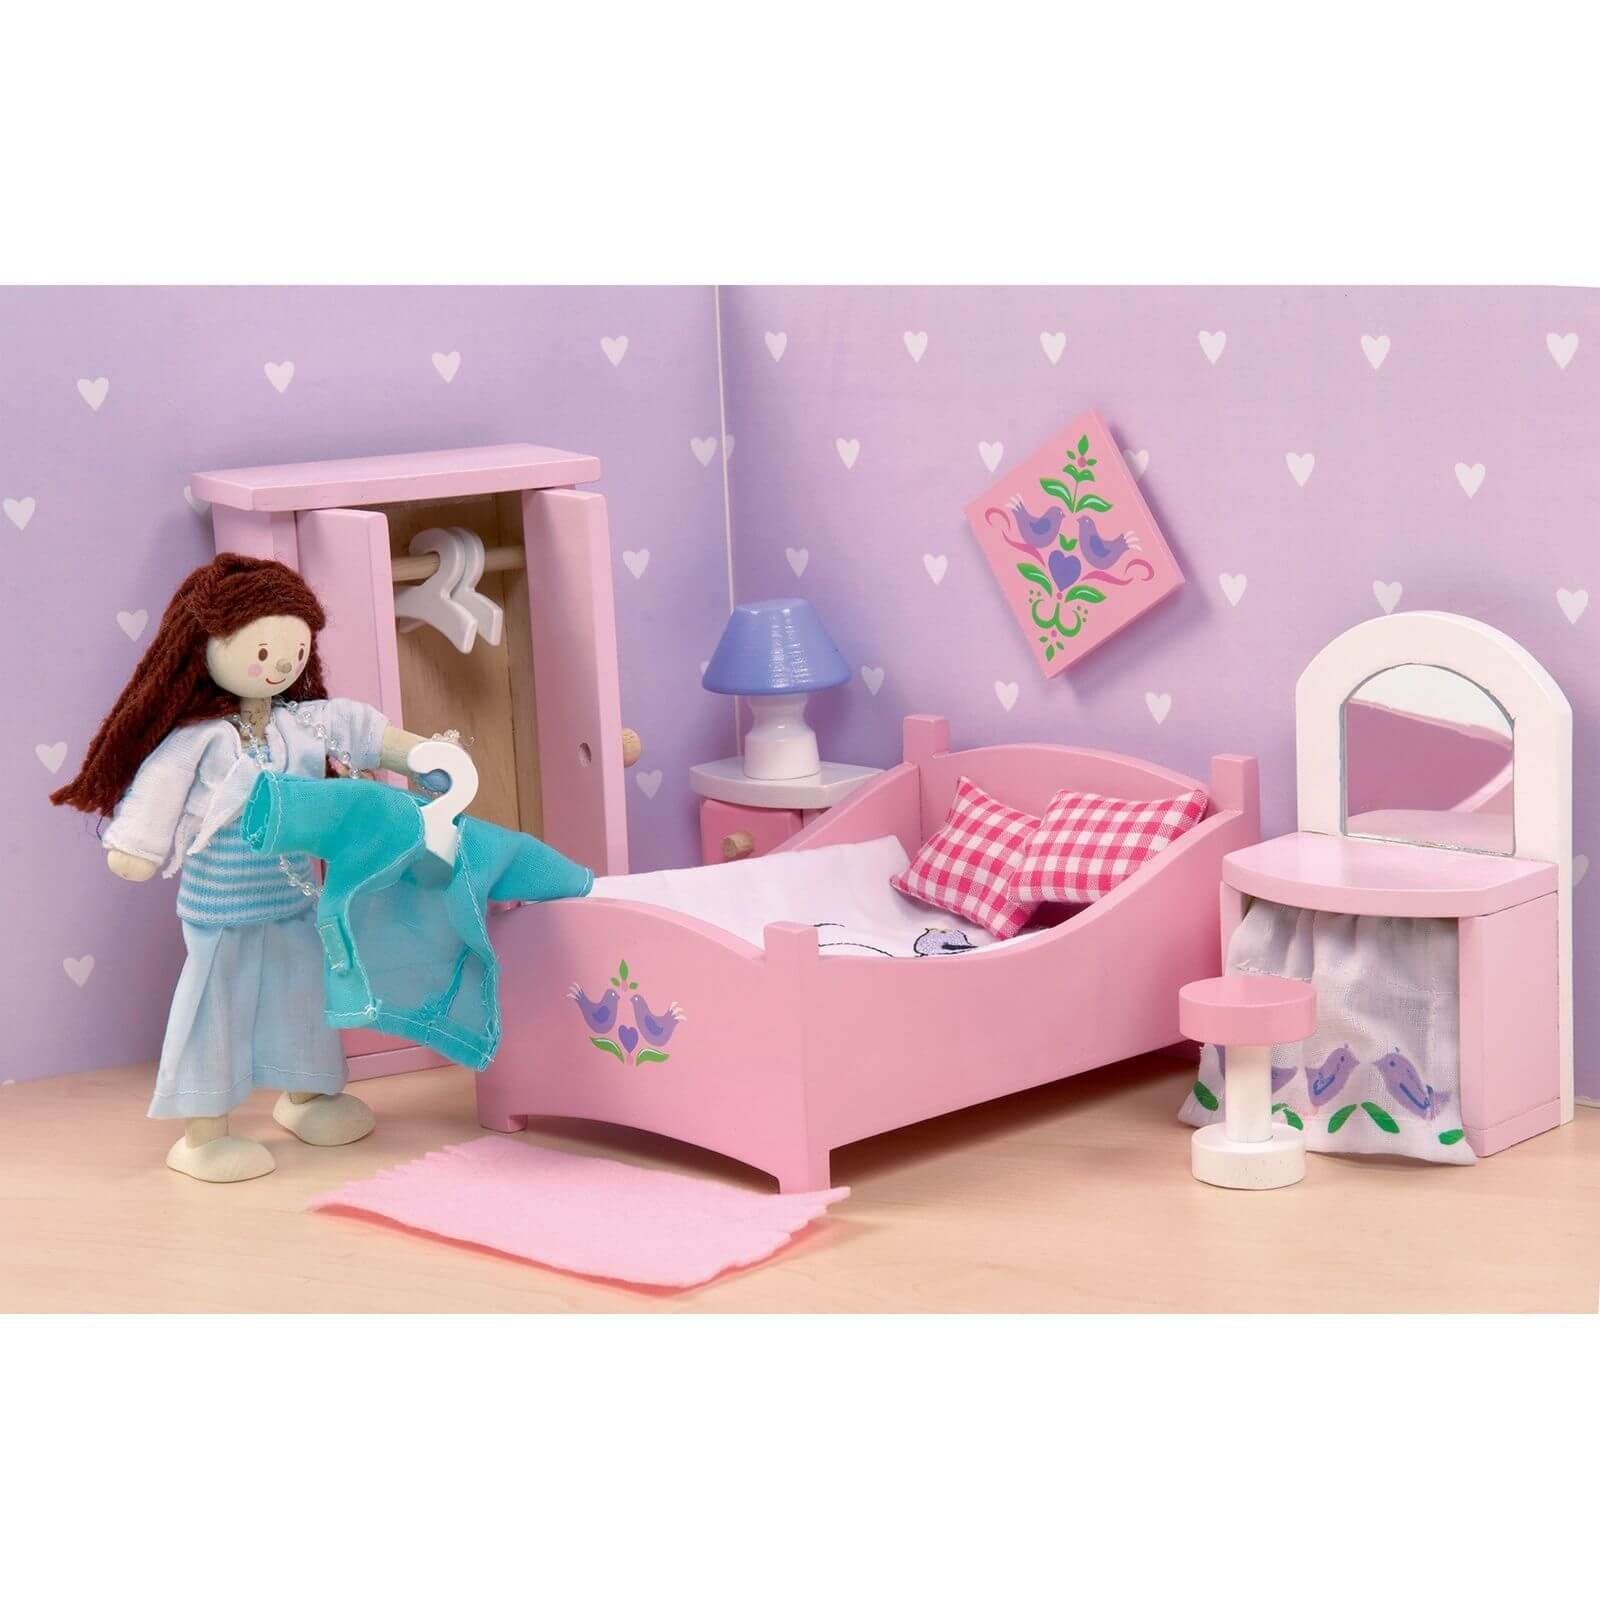 Le Toy Van Sugar Plum Bedroom Wooden Dolls House Furniture Jadrem Toys